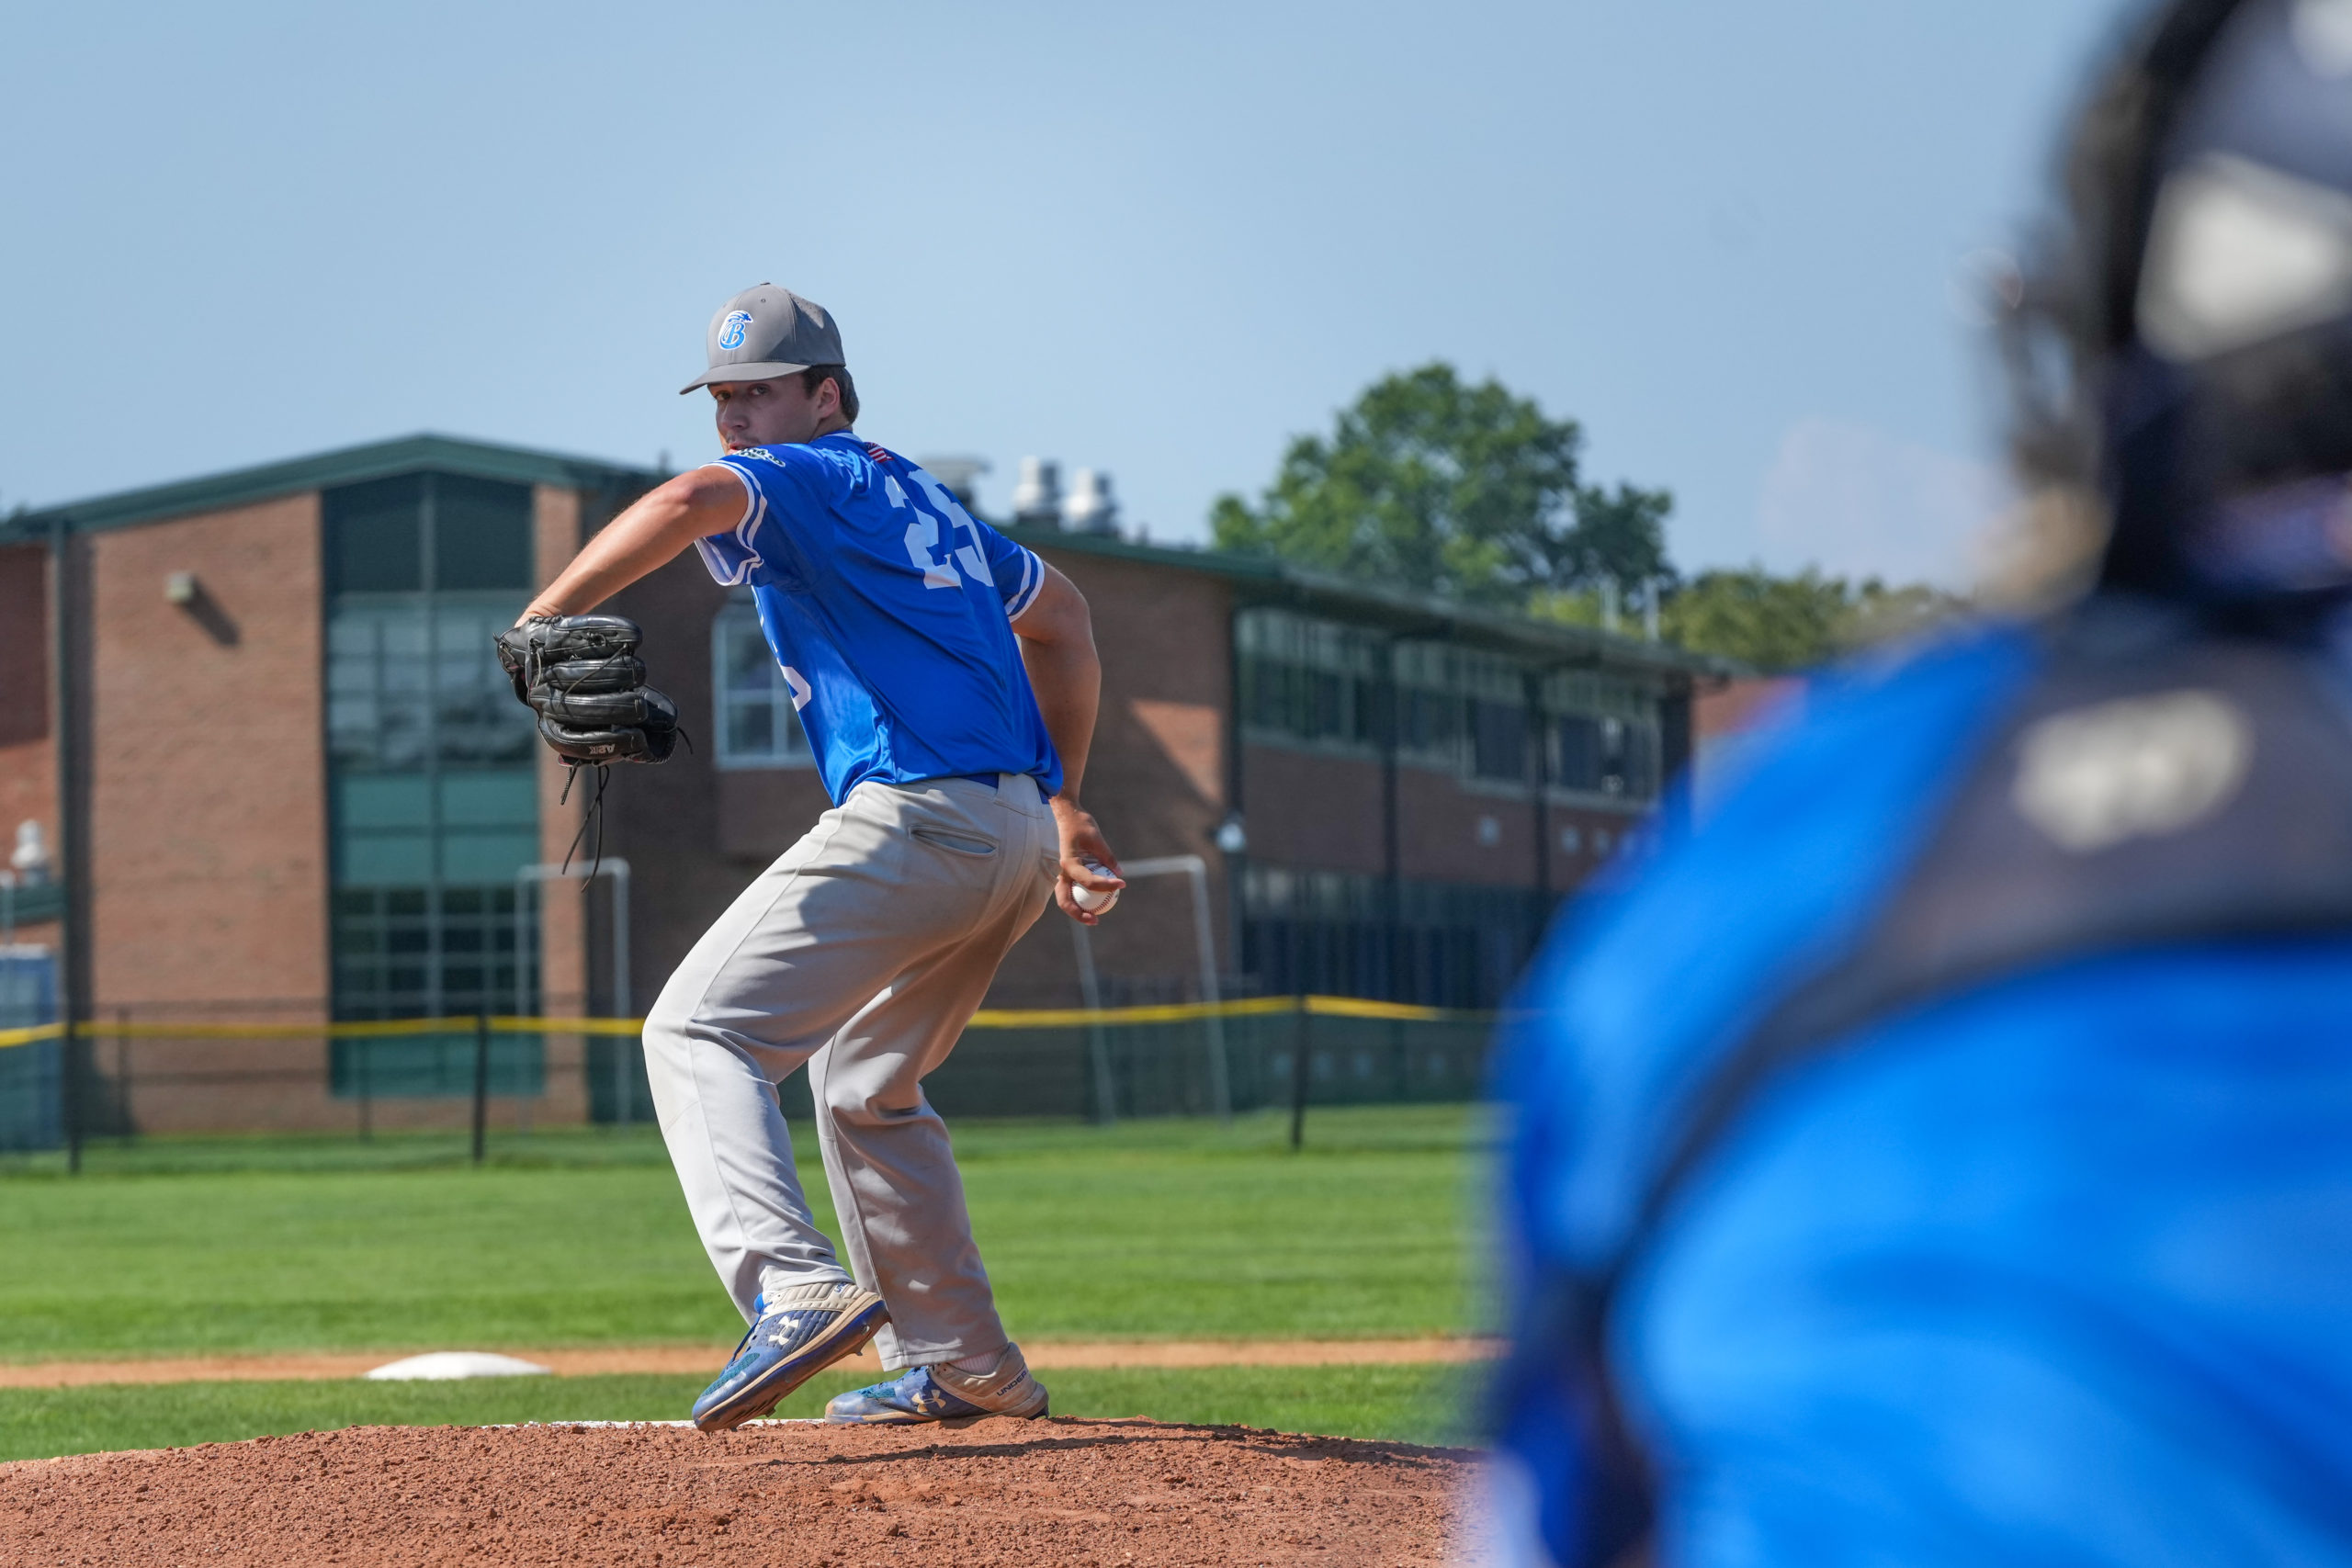 Southampton Breaker Matt Jachec (Indiana State) pitched a complete game shutout in game one of the HCBL semifinal series on Saturday.